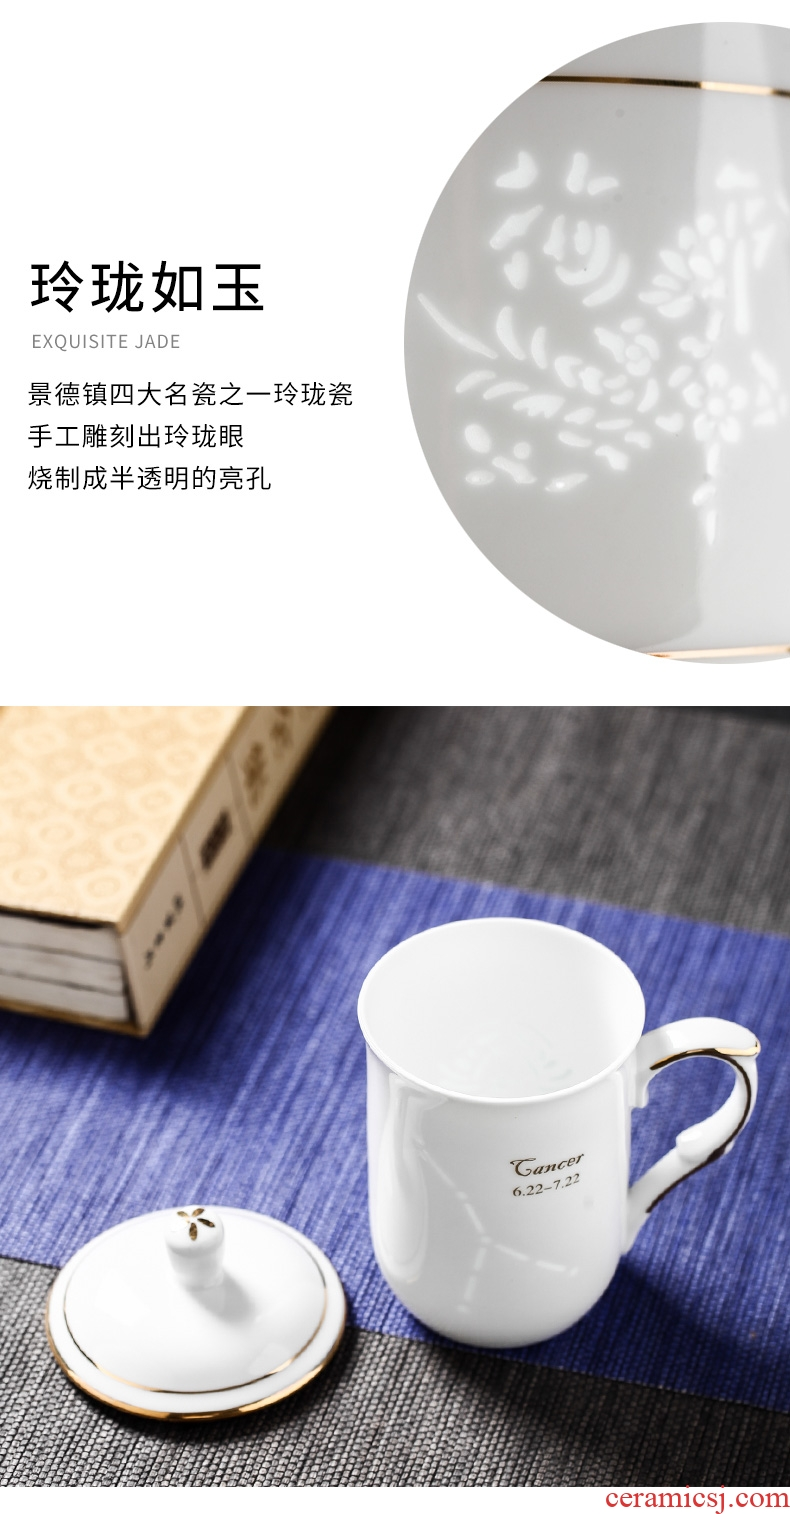 Ceramic household and exquisite glass creative move trend office keller cup with cover the men and women lovers cups water